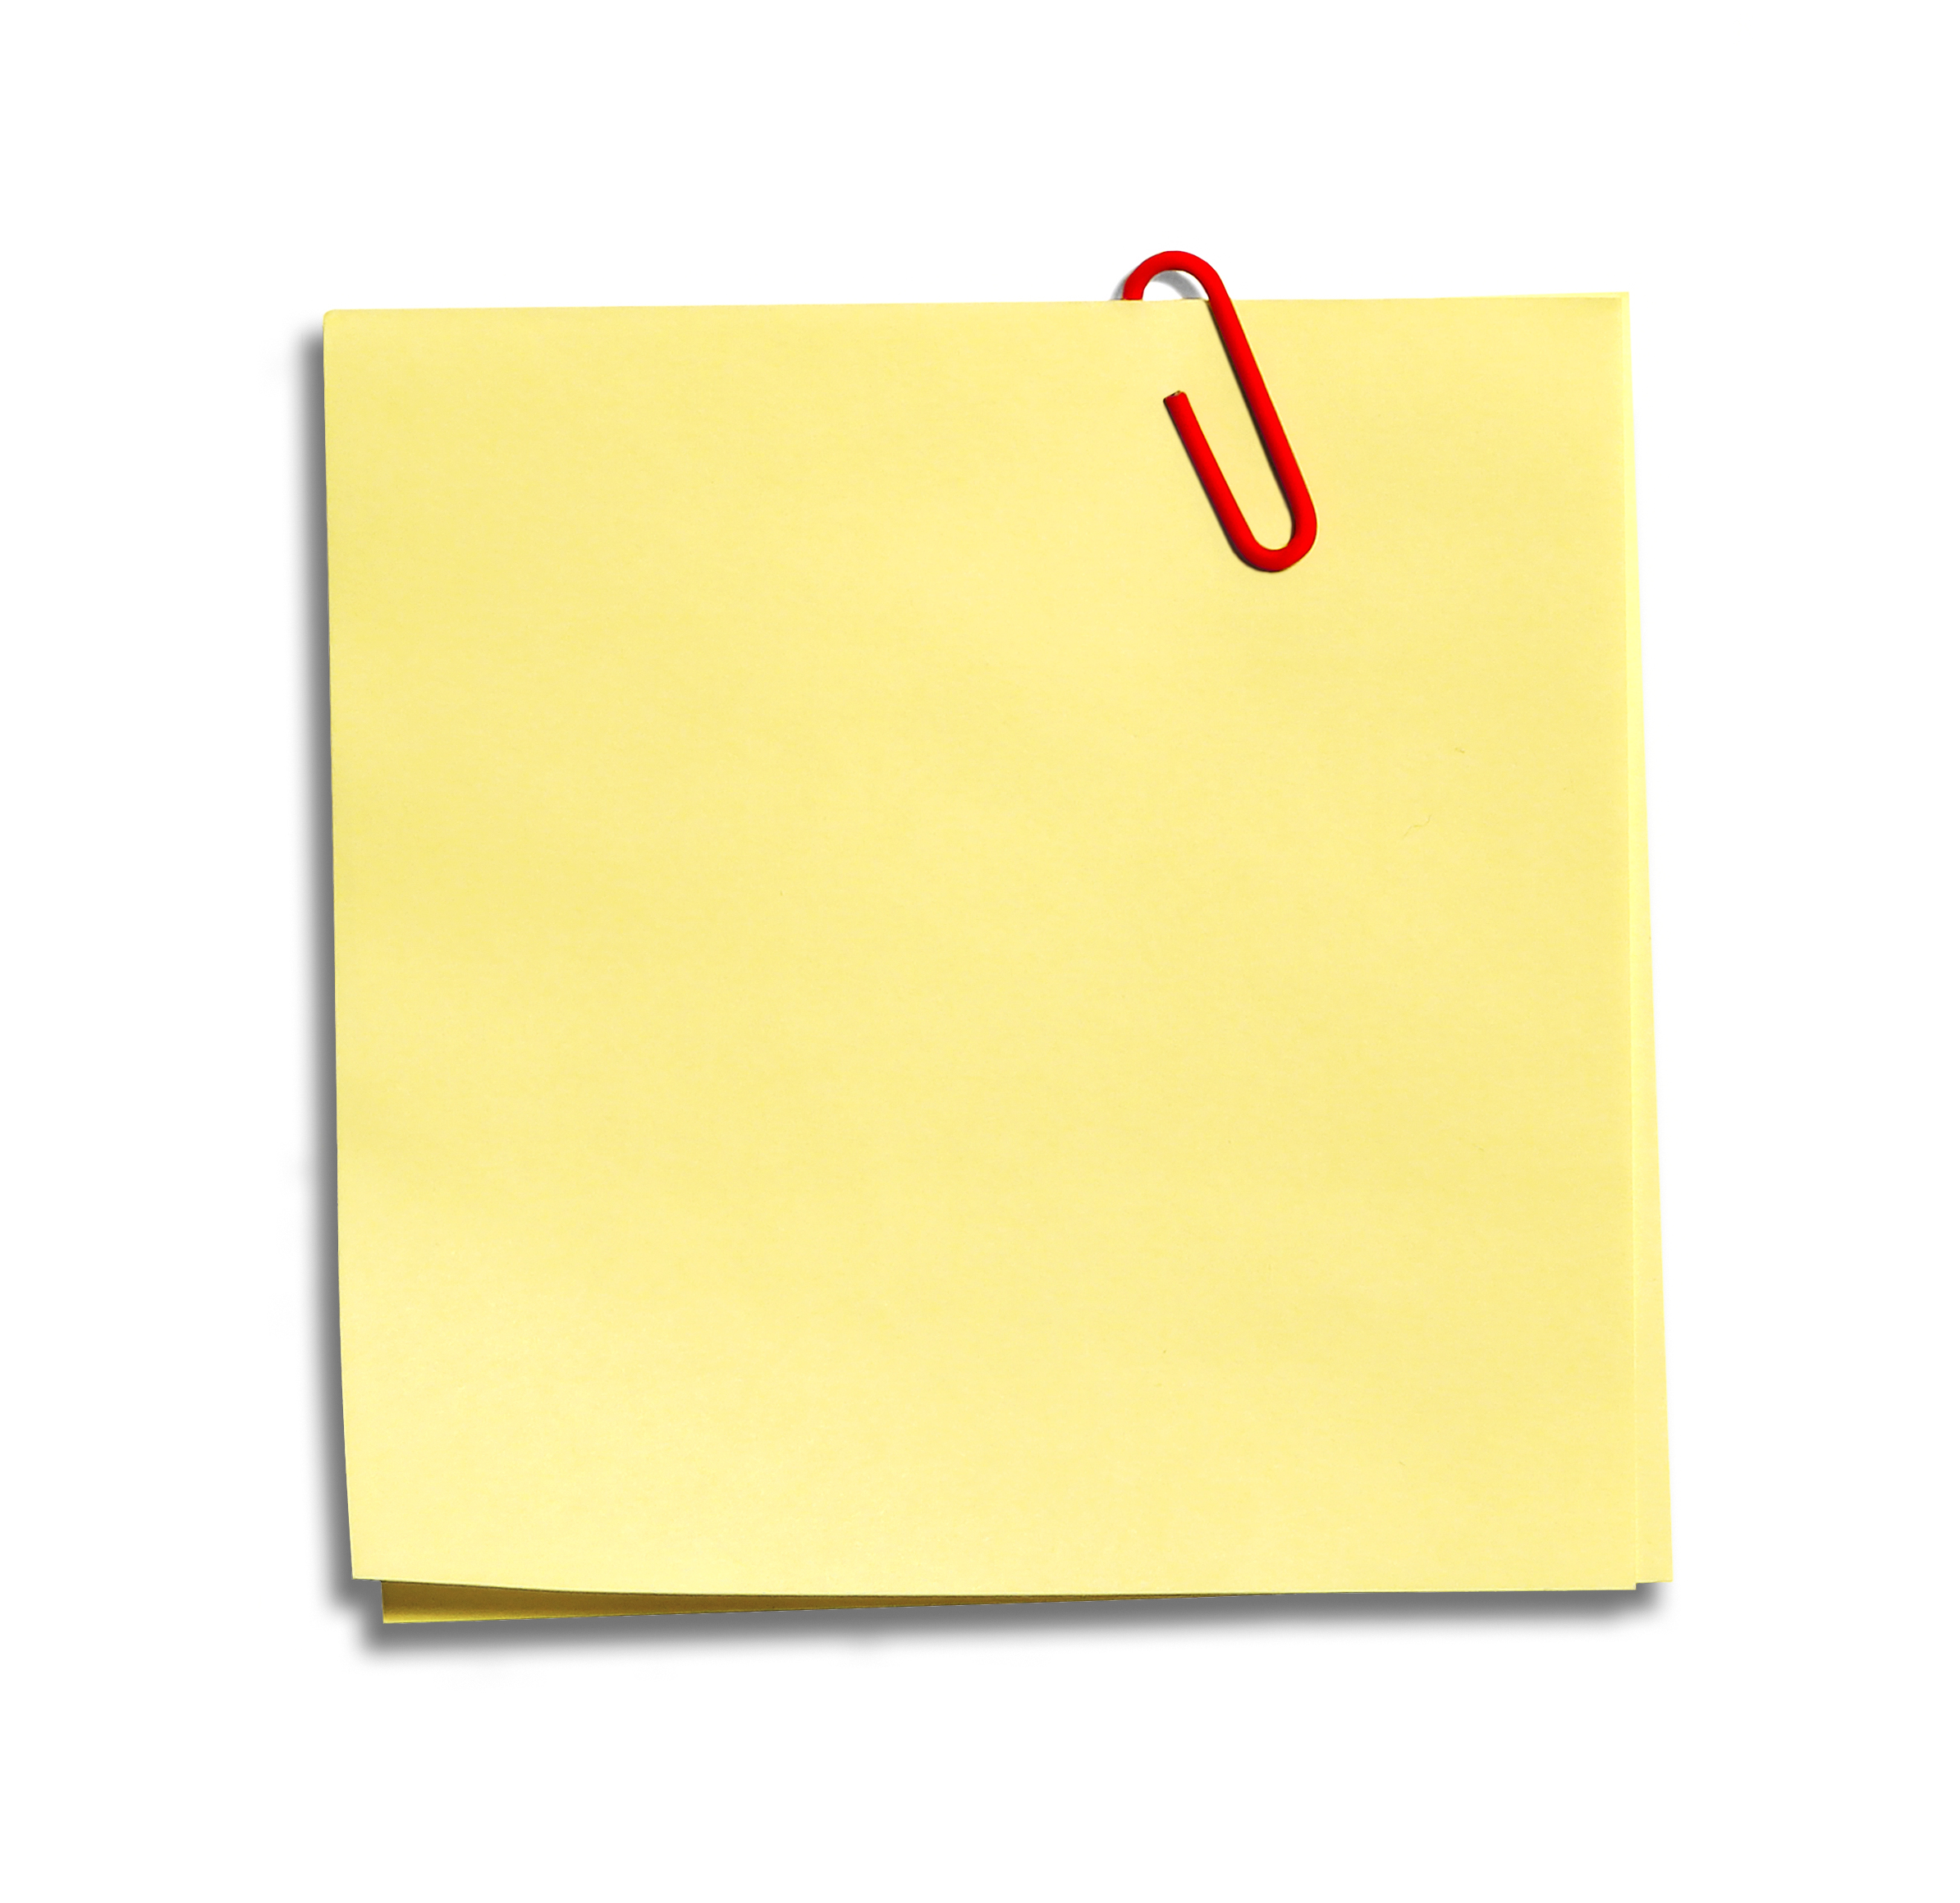 Post It Note Png - ClipArt Best